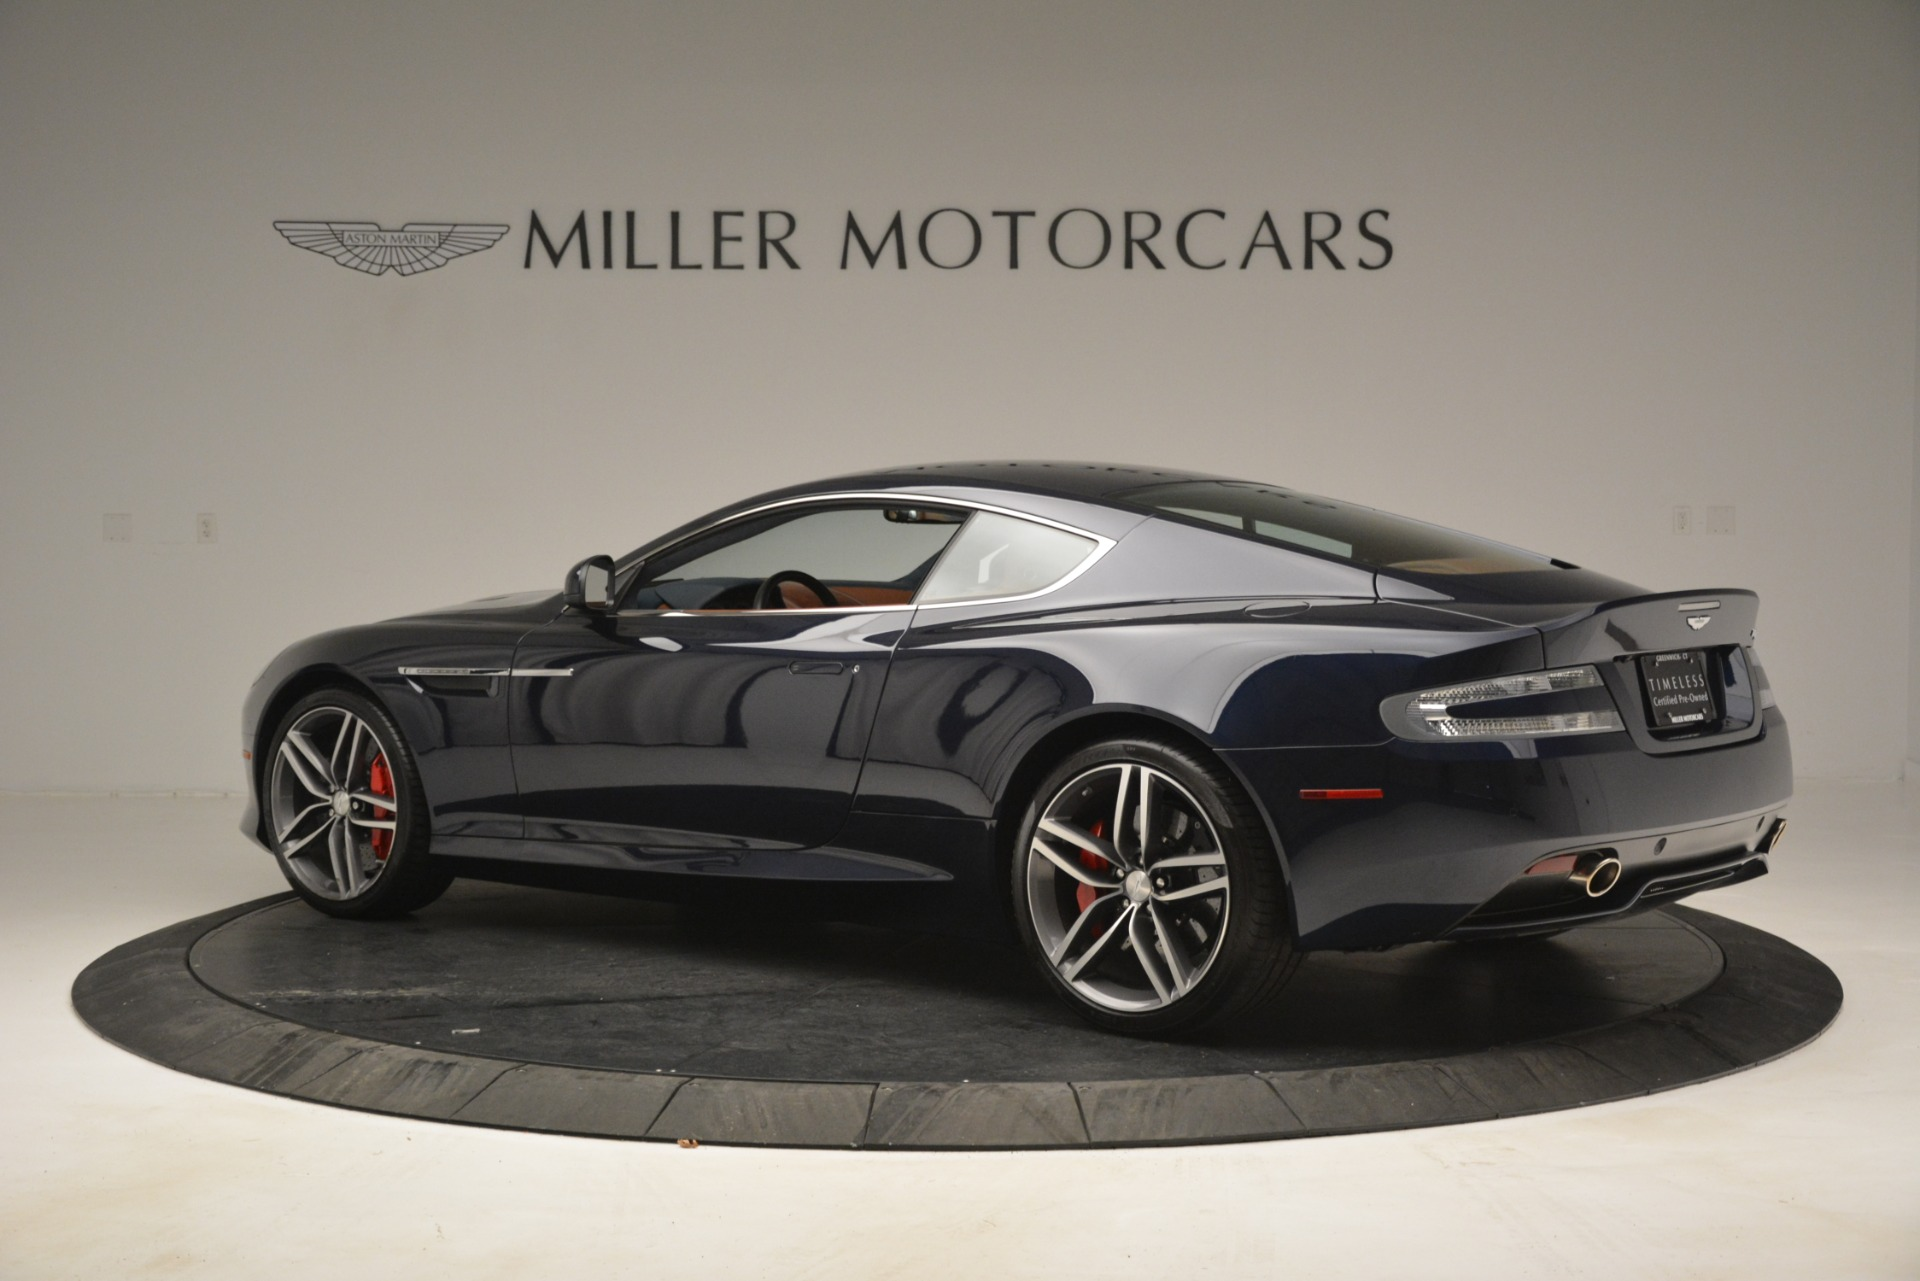 Used 2014 Aston Martin DB9 Coupe For Sale In Westport, CT 3010_p4